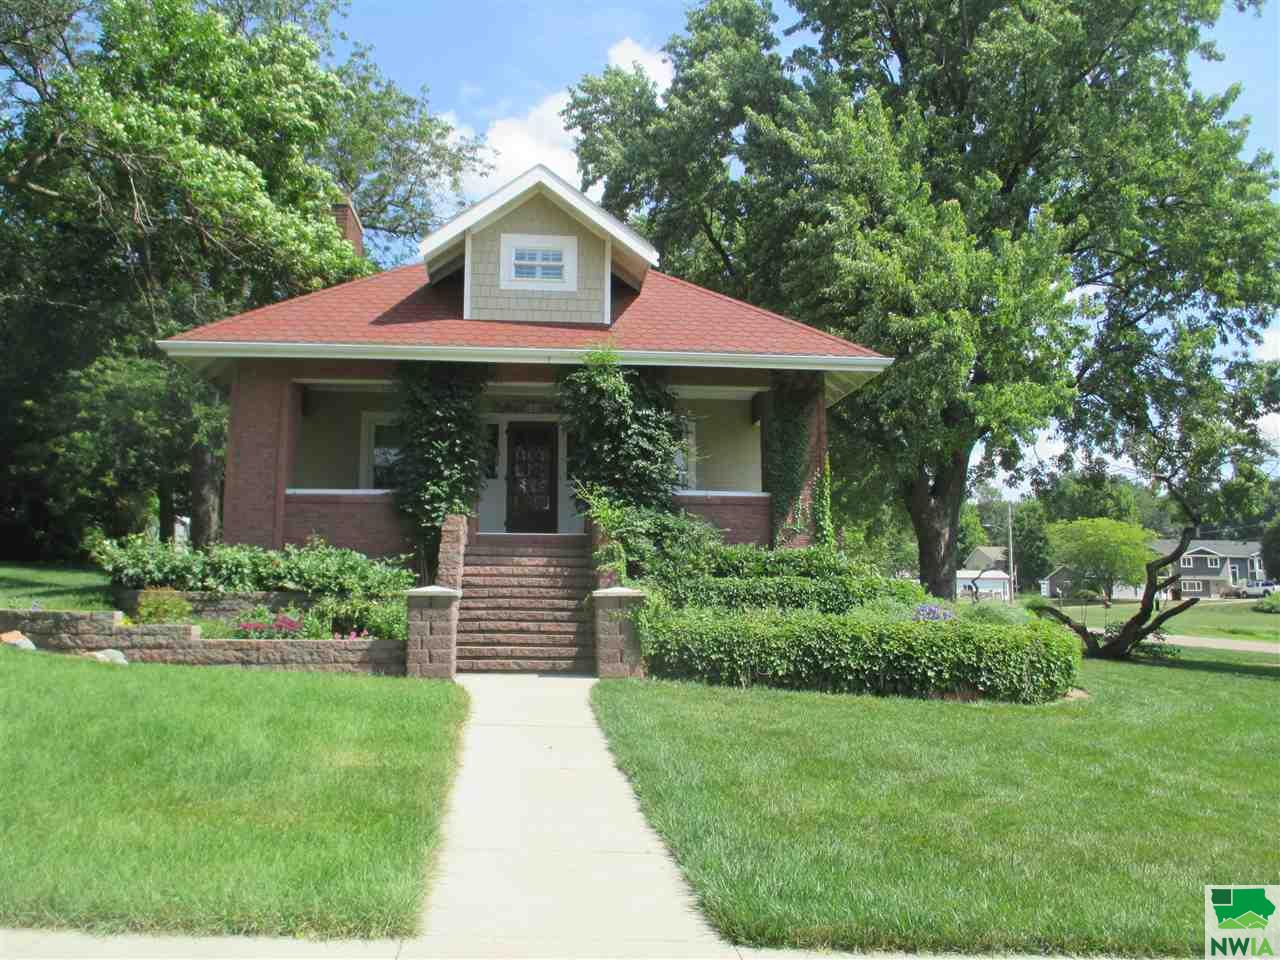 Property for sale at 217 E Second St., Kingsley,  Iowa 51028